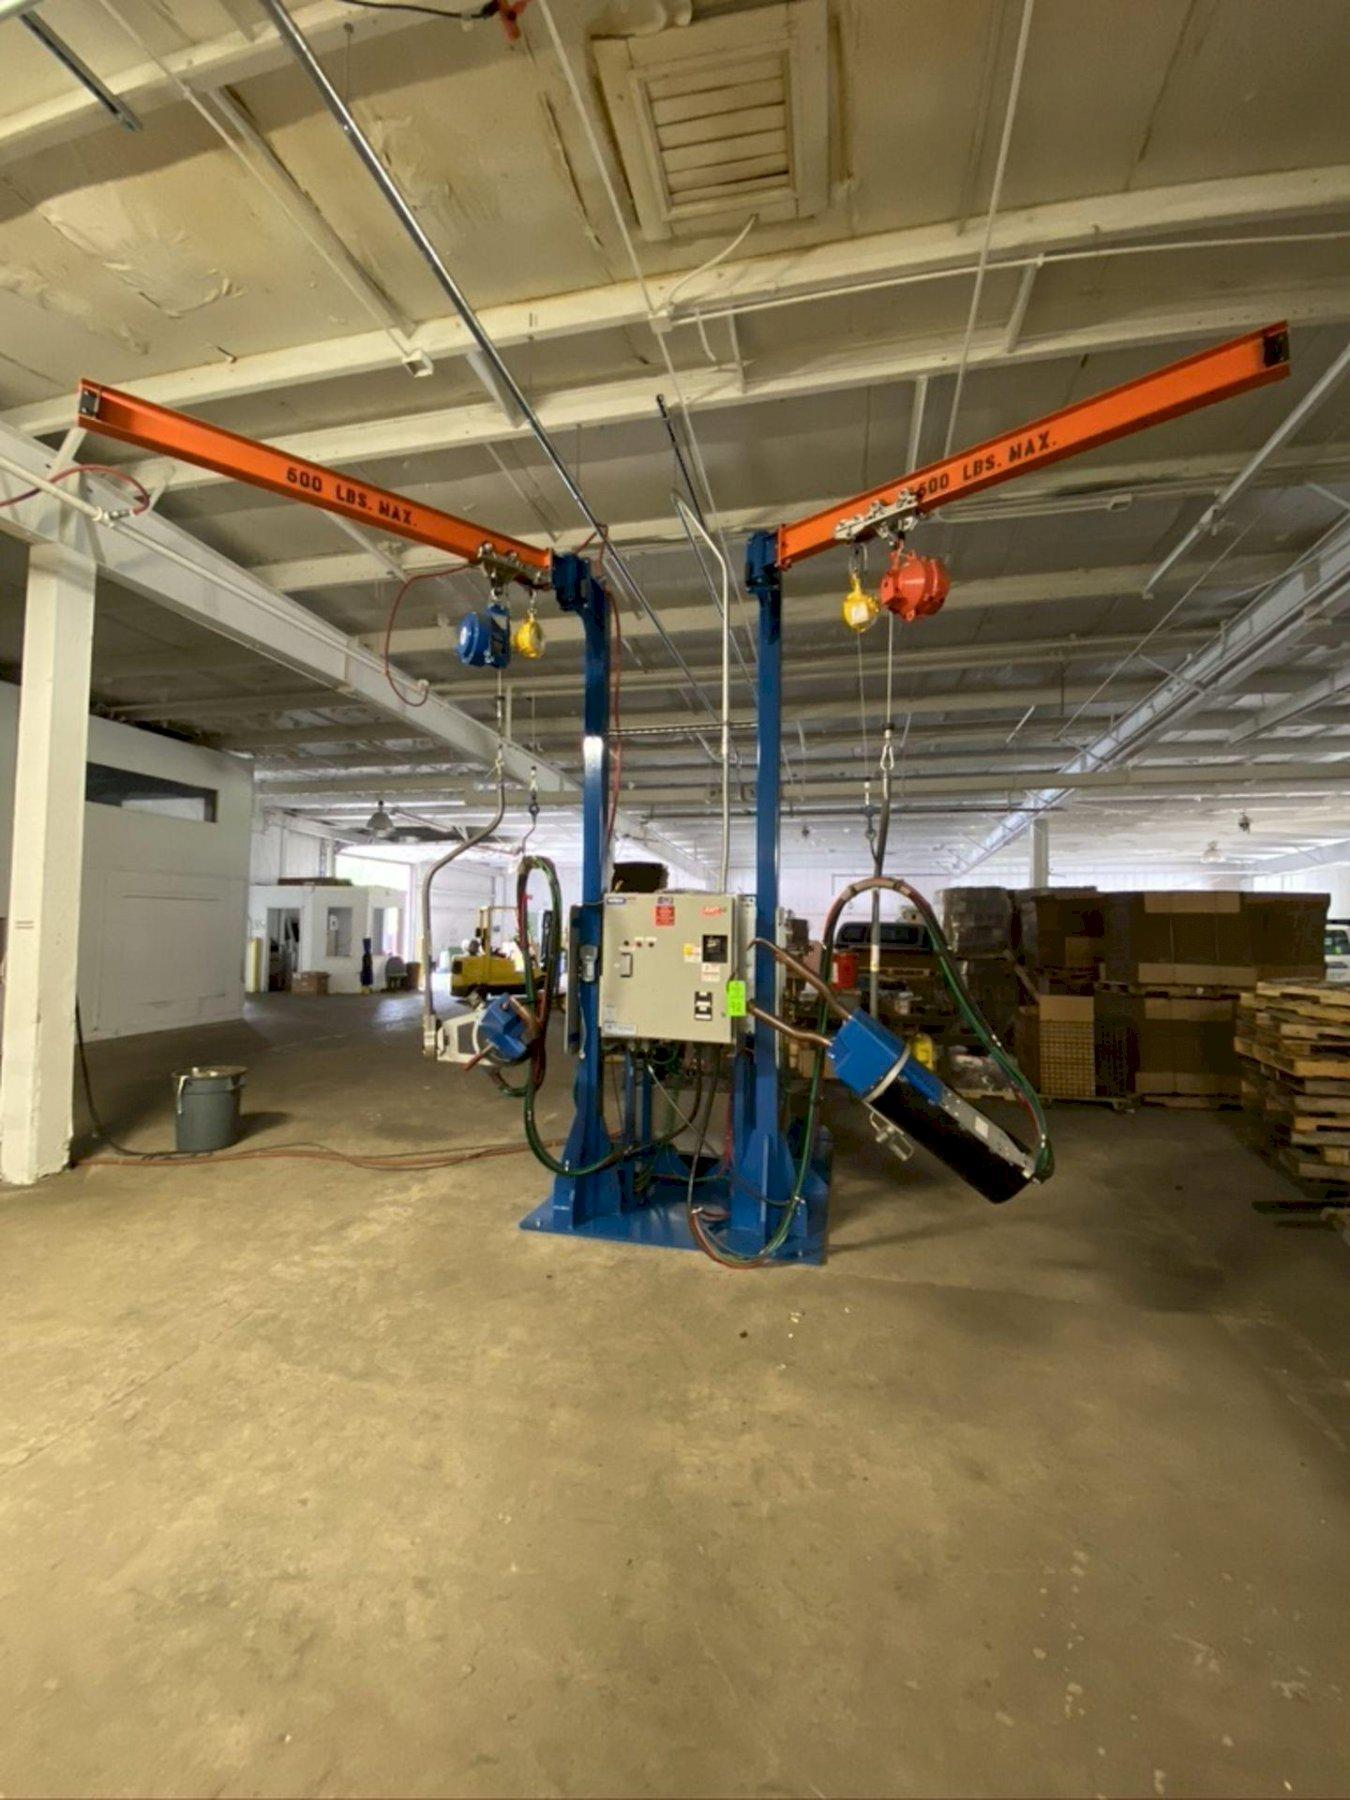 MILCO MFG DUAL BOOM WELD GUN STATION, TRANS WELD UNIT, 36 KVA, (2) BOOMS, (1) FRAME, WTC-6001 CONTROLS, CHILLER, COOLANT TANK